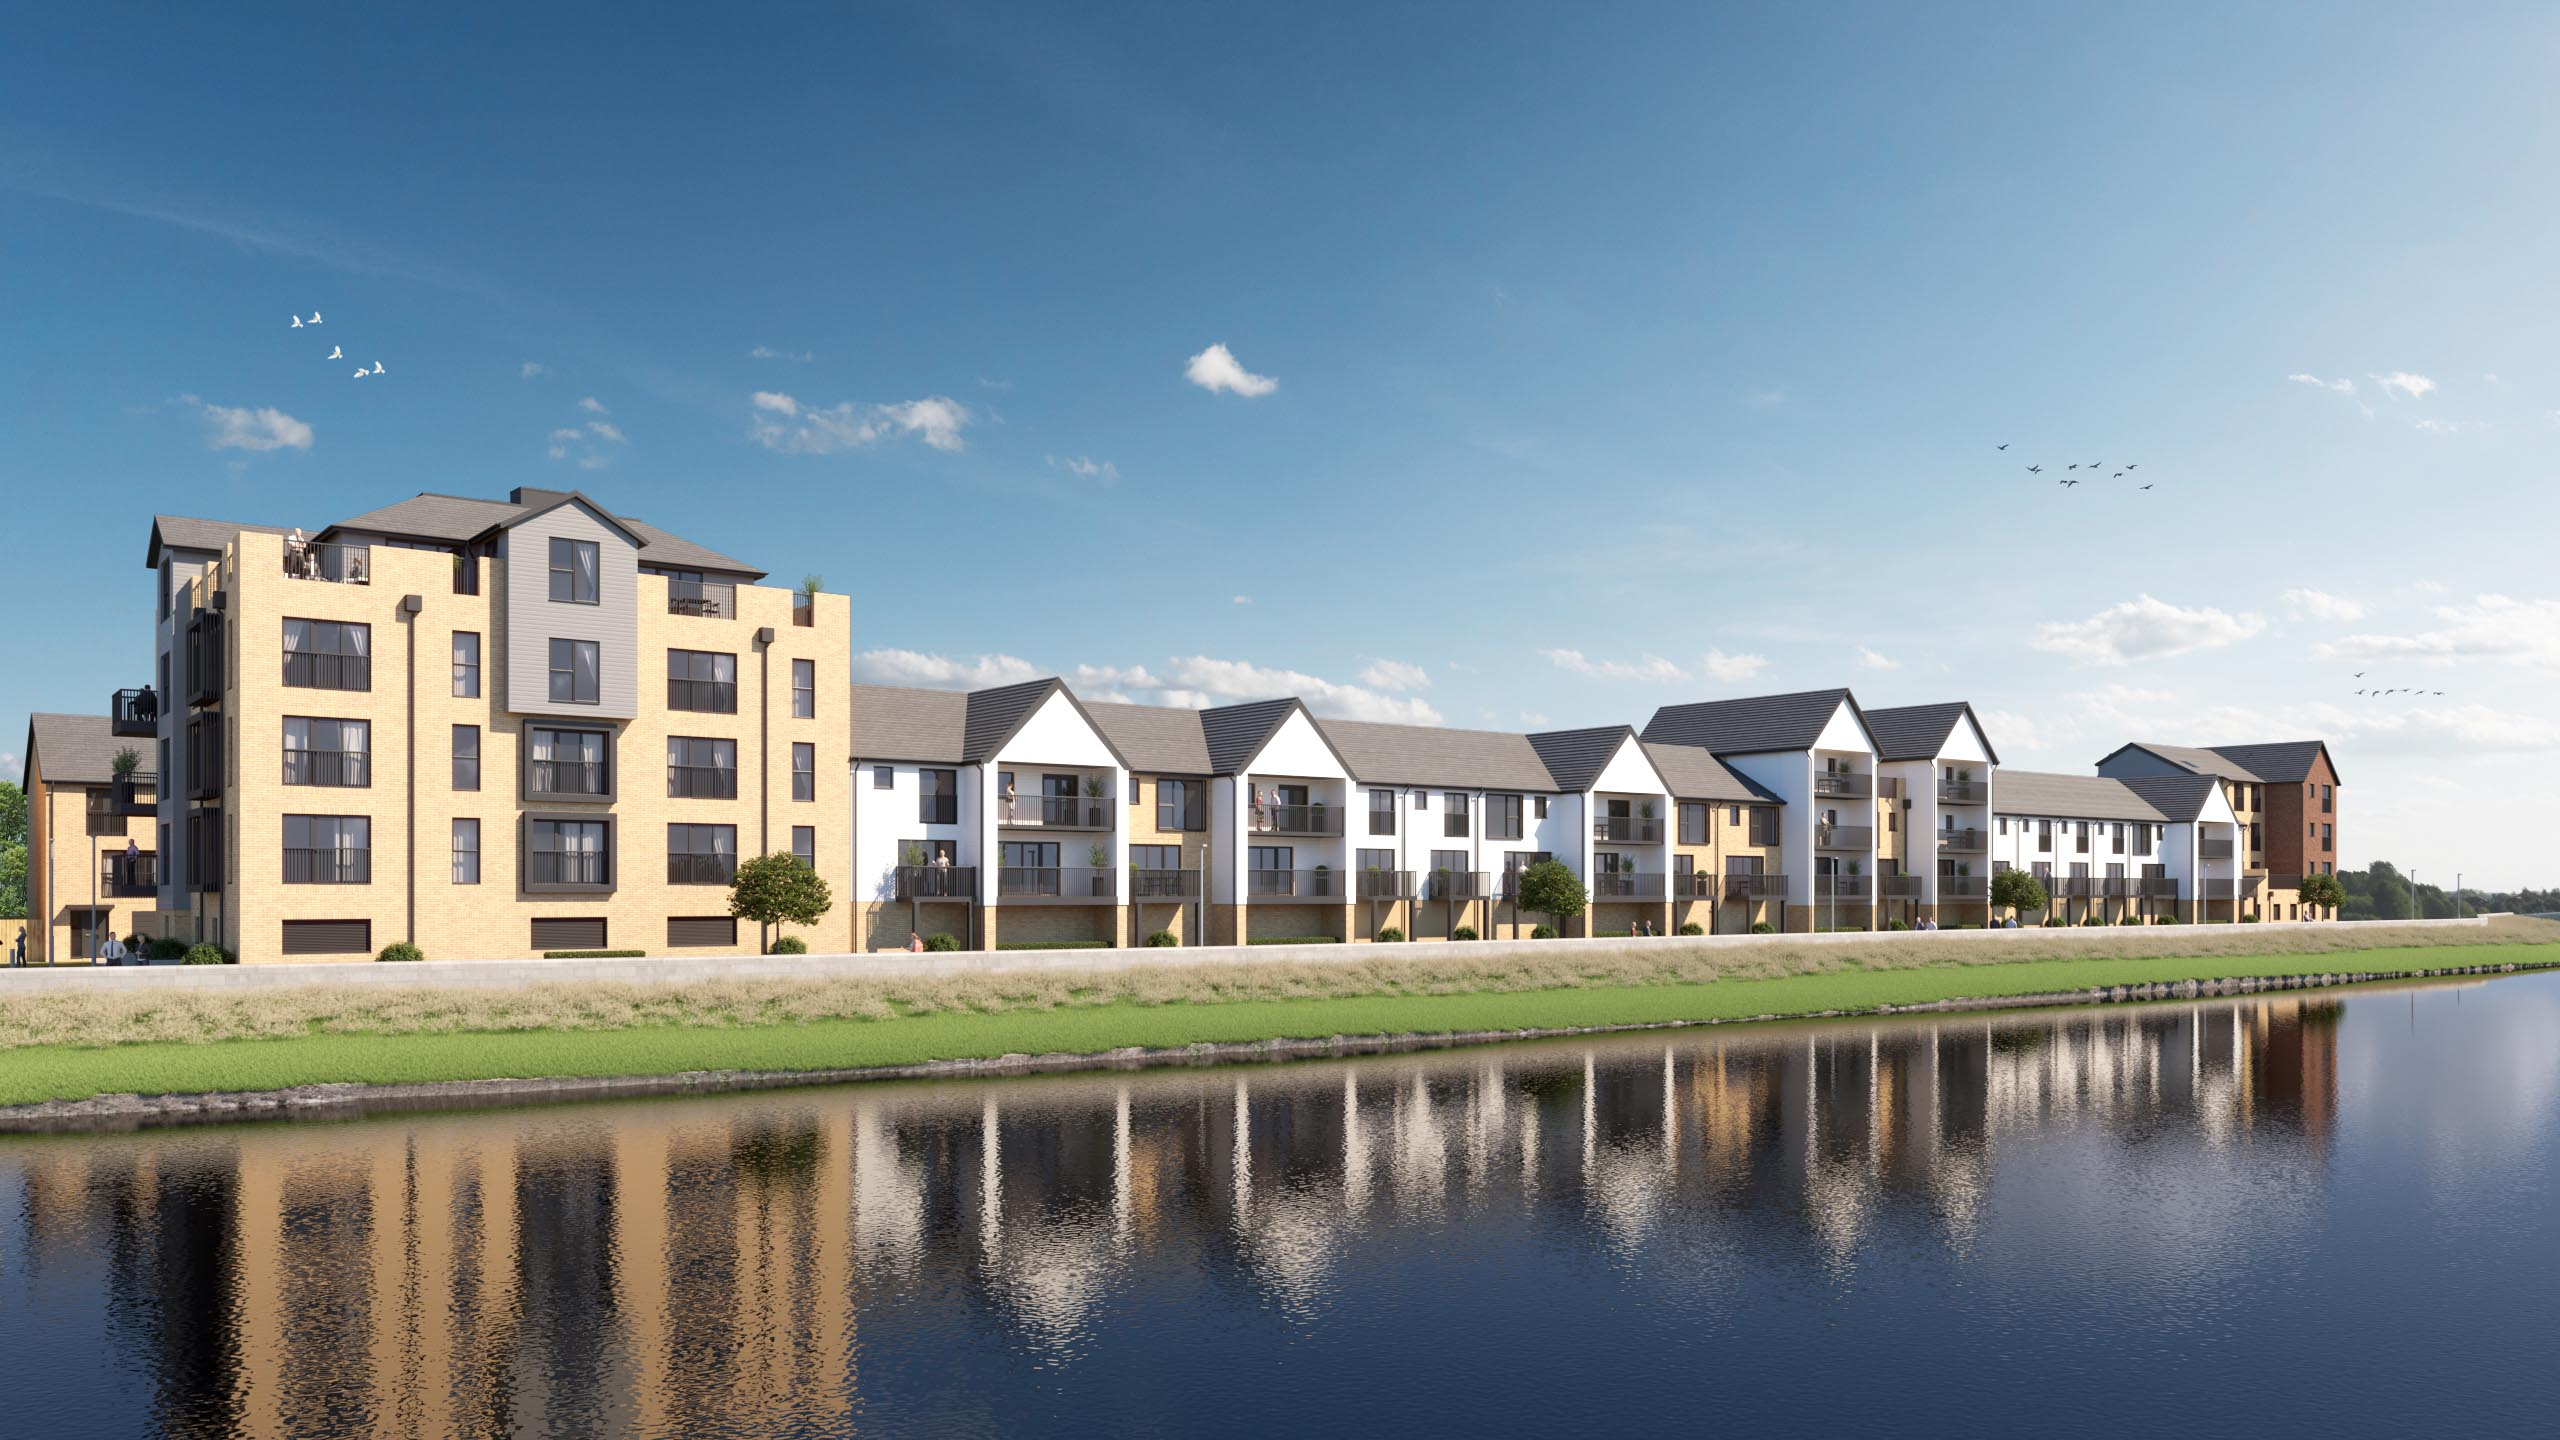 Taw Wharf Development